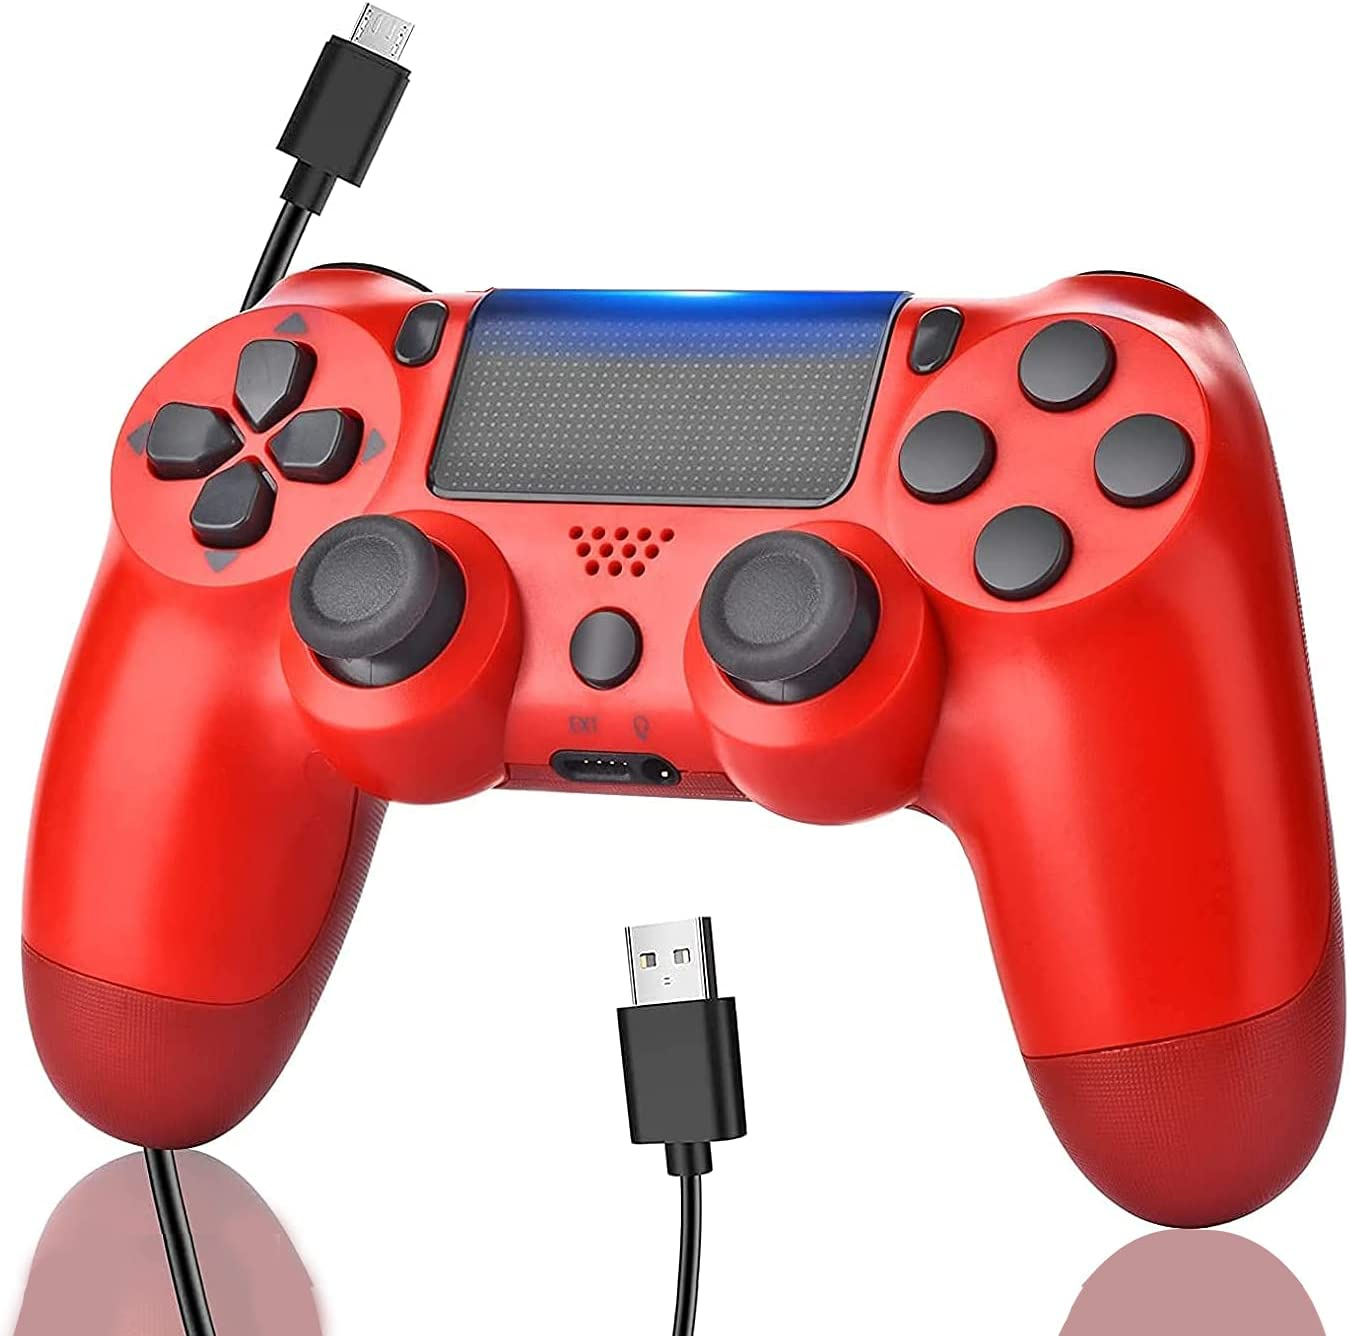 Wiv77 Wireless Remote Controller for P-5/P-4/Pro/PC, USB Charge Cable/800mAh Battery/Stereo Headset Jack/Two Motors-Red